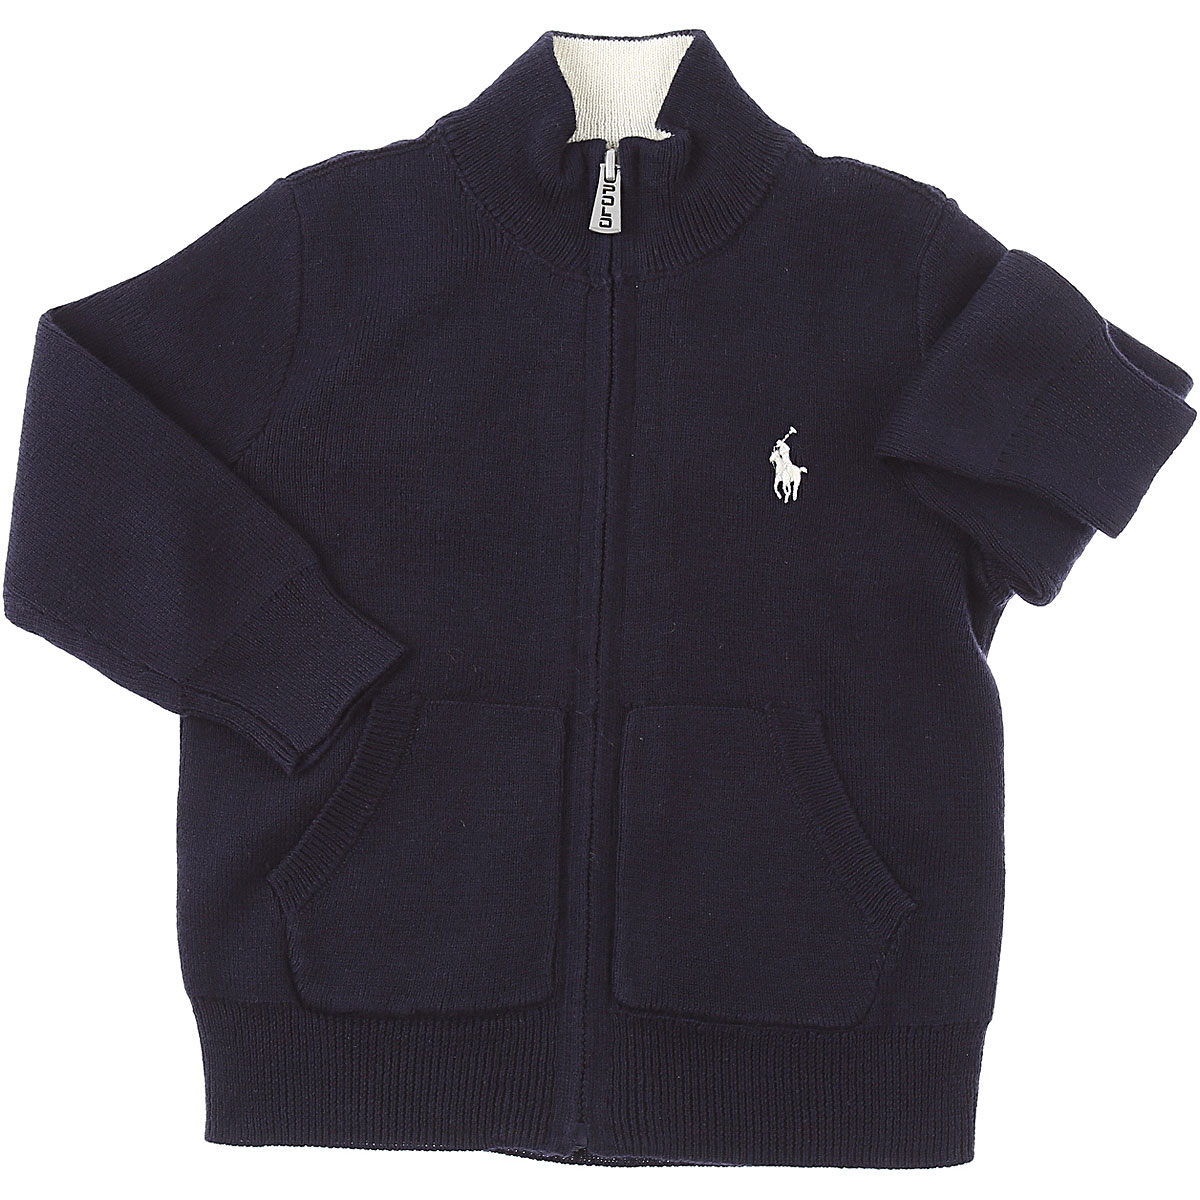 Ralph Lauren Baby Sweaters for Boys On Sale, navy, Cotton, 2019, 12 M 18M 2Y 6M 9M